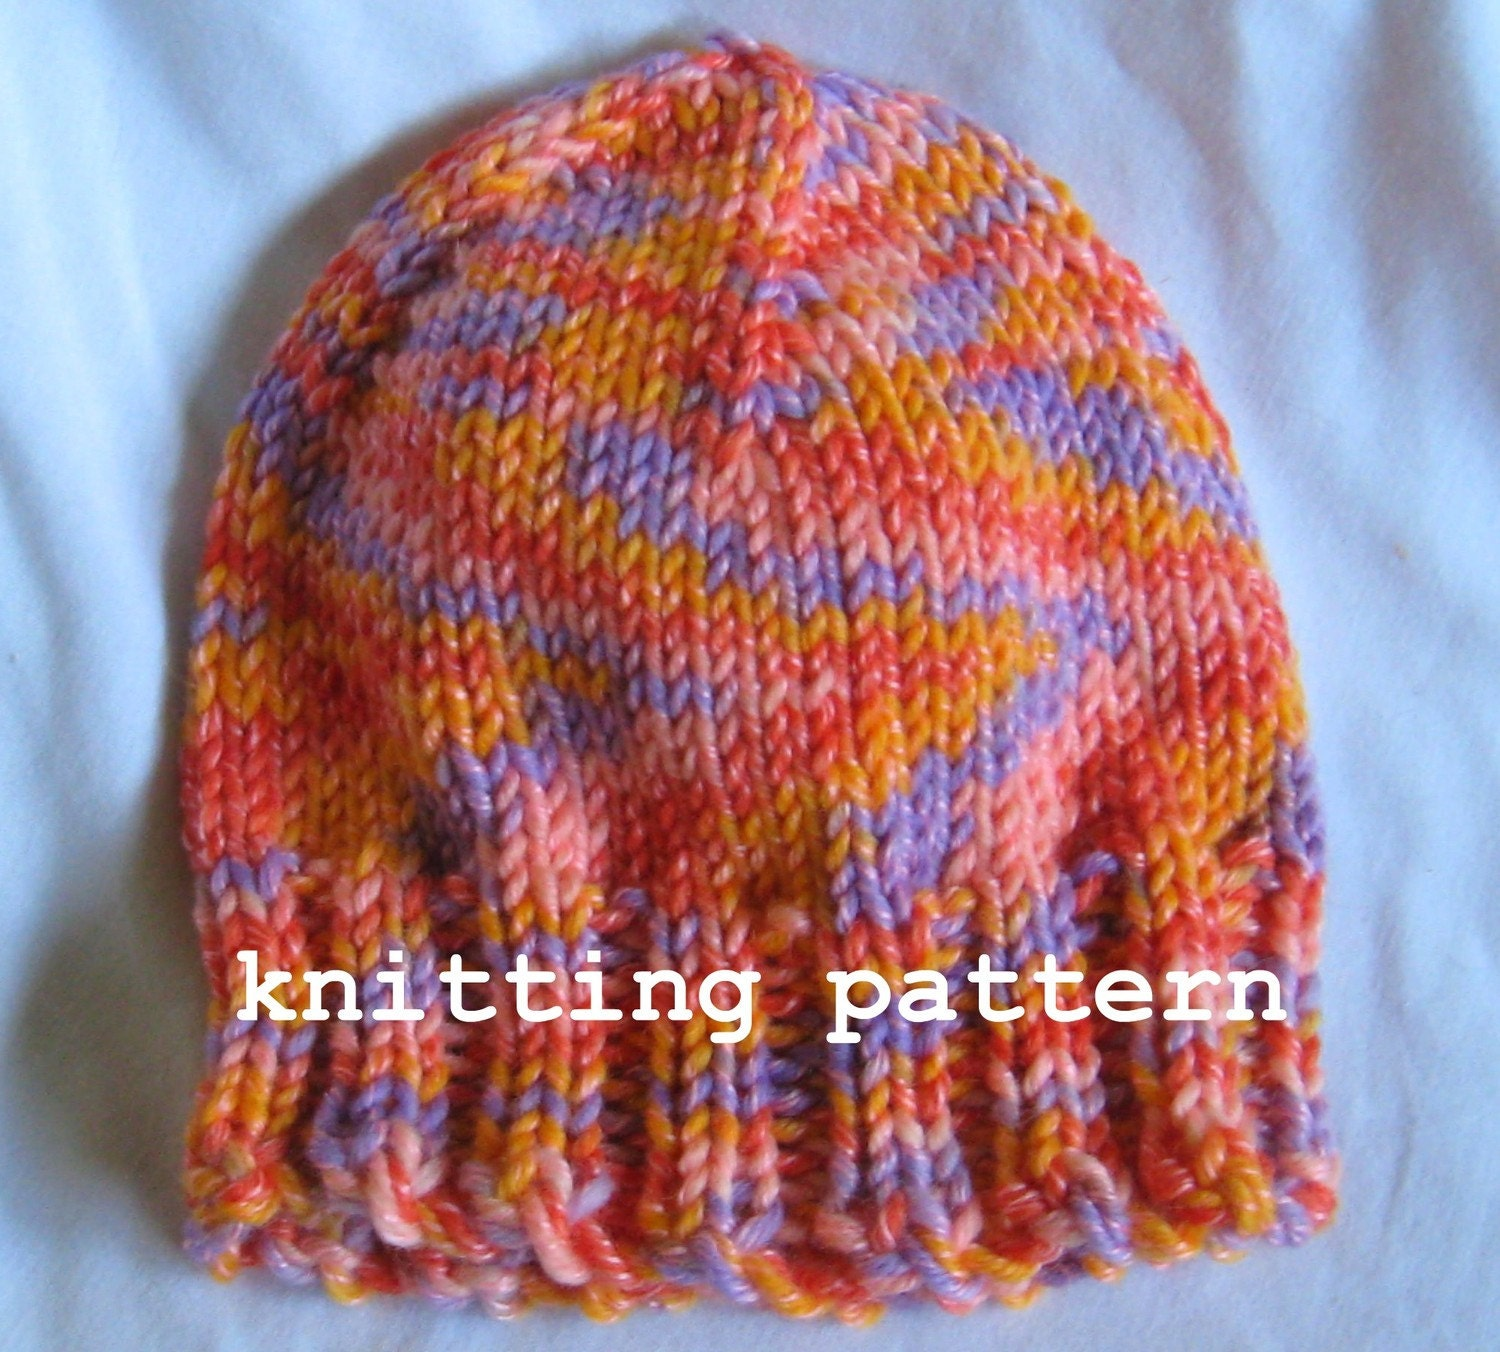 Knitting Pattern Wooly Hat : Knitting Pattern PDF Wool Blend Beanie